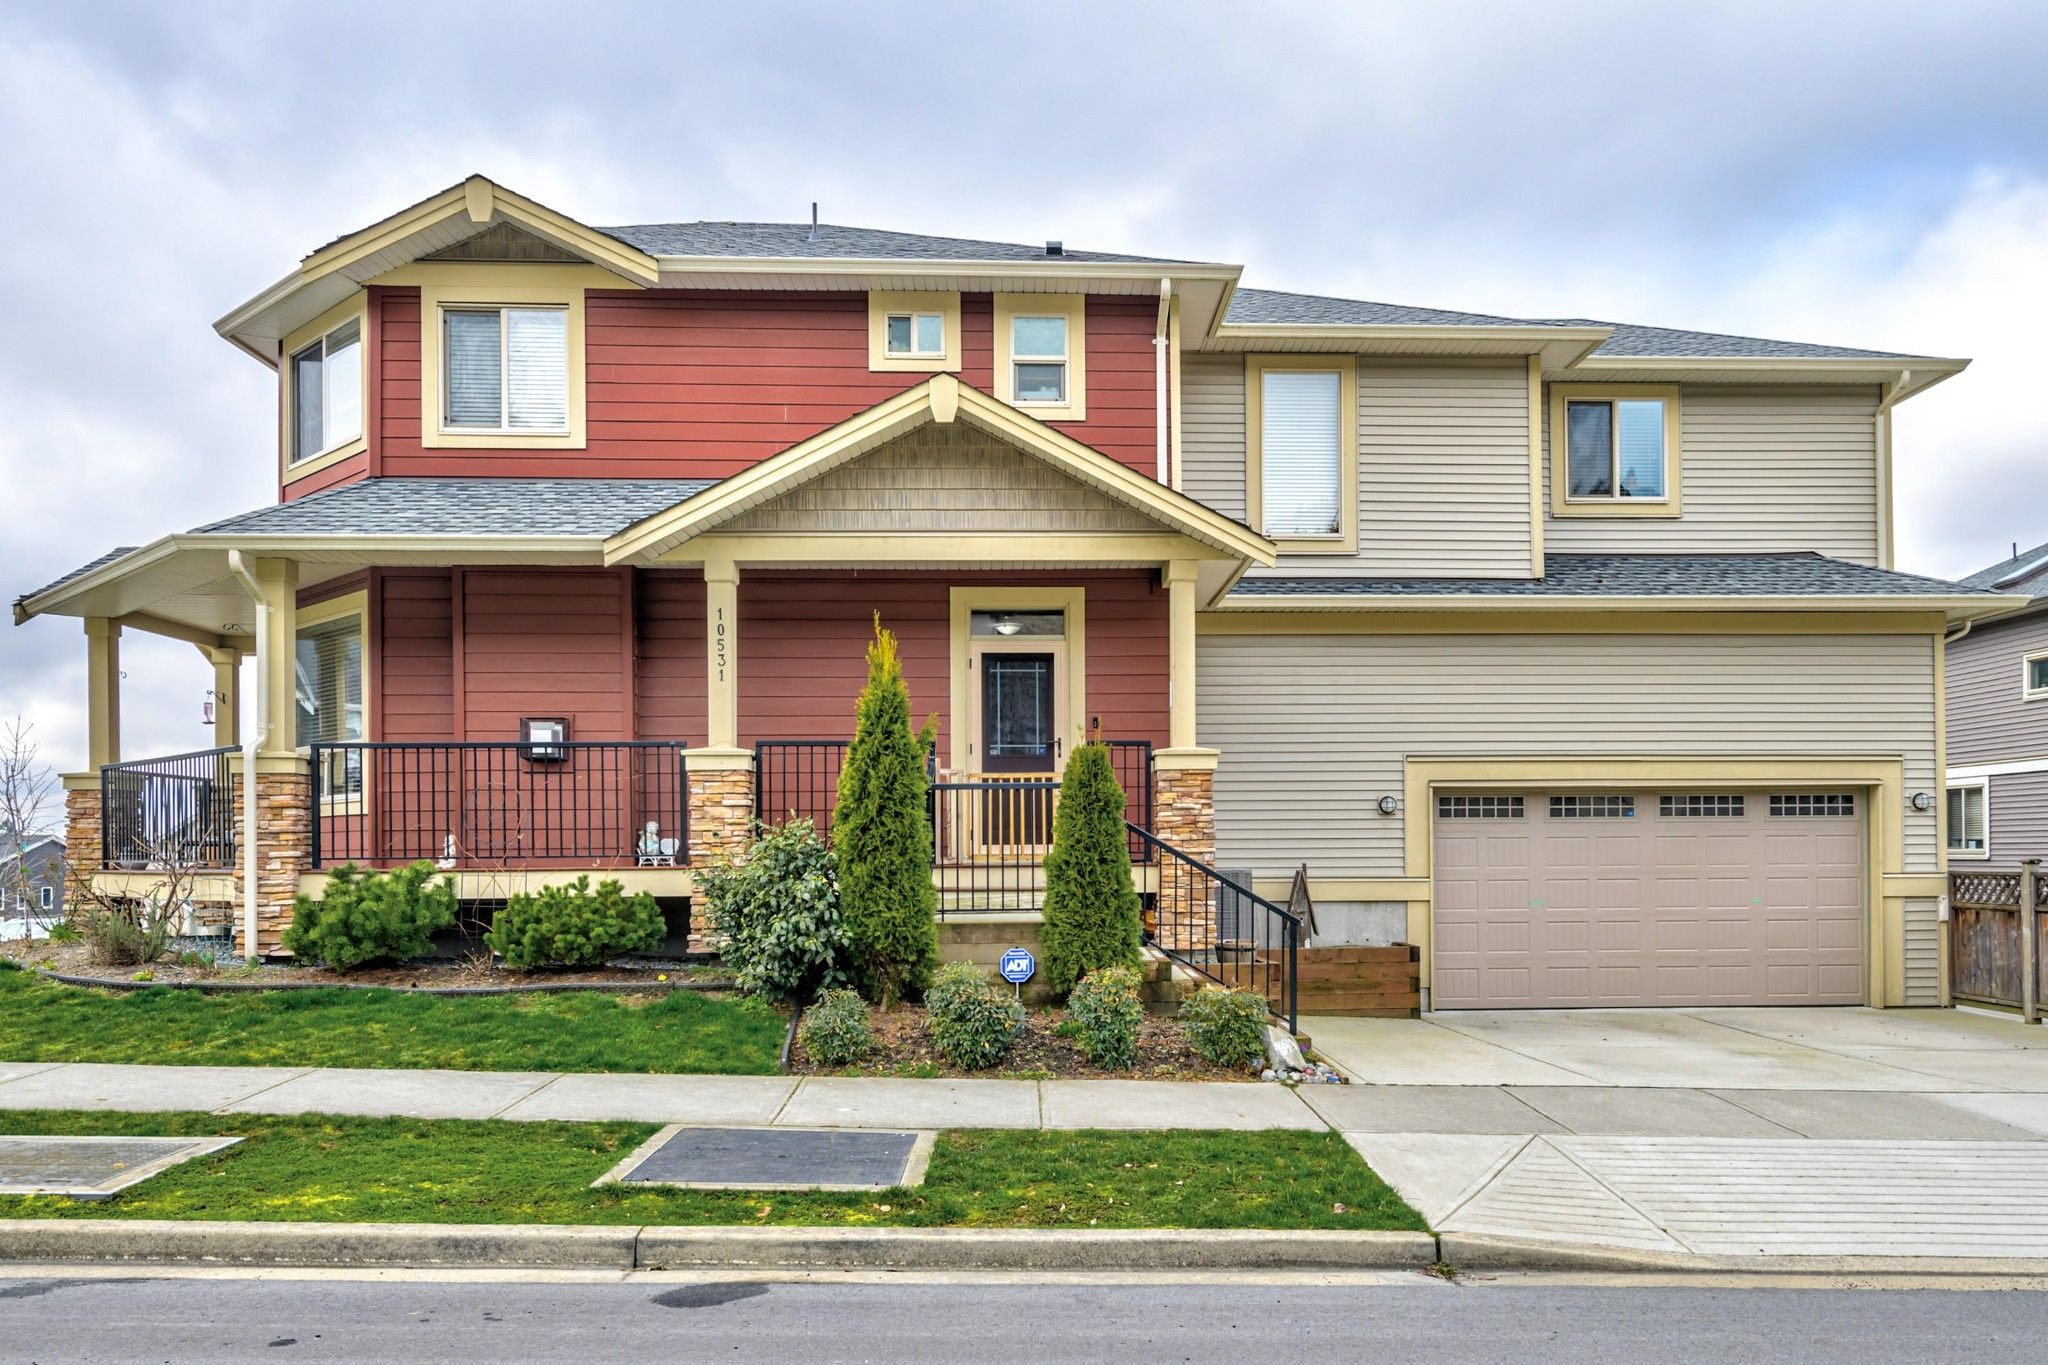 Main Photo: 10531 248 STREET in Maple Ridge: Albion House for sale : MLS®# R2549525